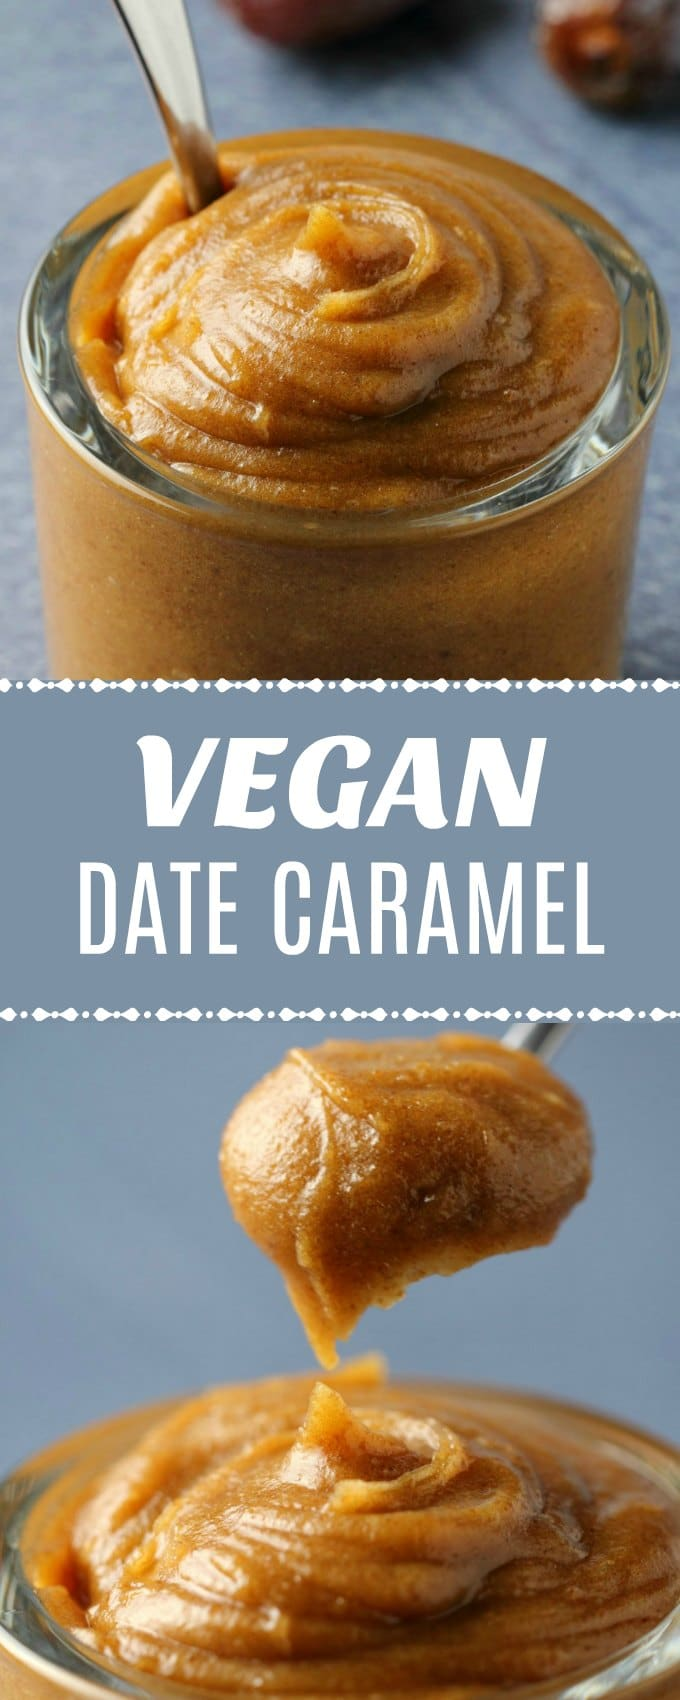 Easy 3-ingredient homemade date caramel that you can use as a pie filling, ice cream swirl or topping, on your oatmeal, or just eat it with a spoon! | lovingitvegan.com